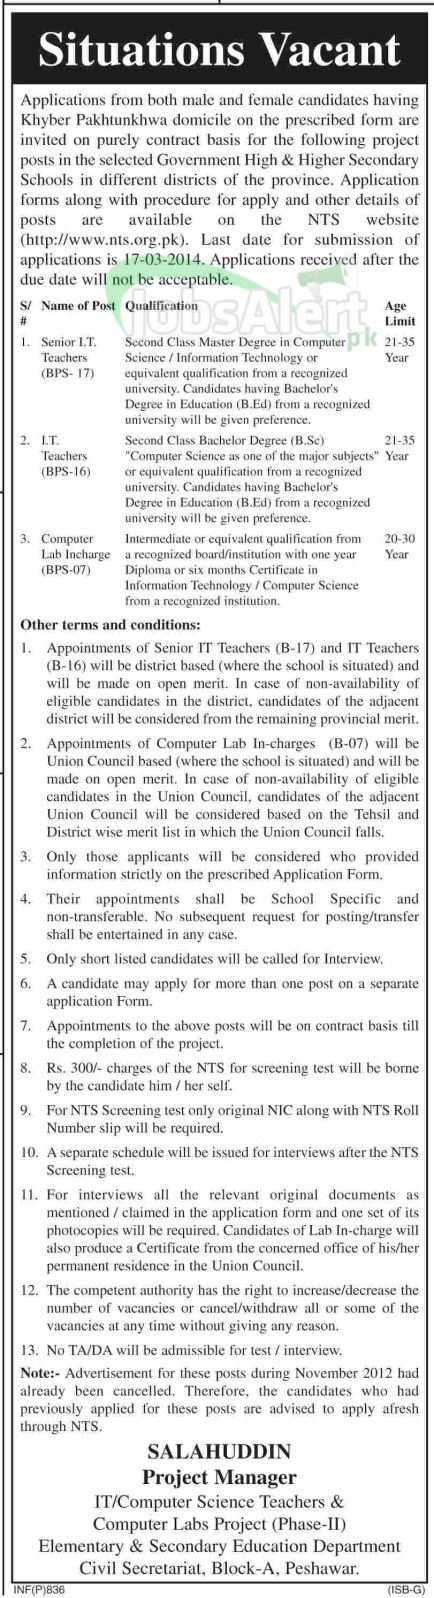 NTS Jobs for IT Teachers & Computer Lab Incharge in KPK